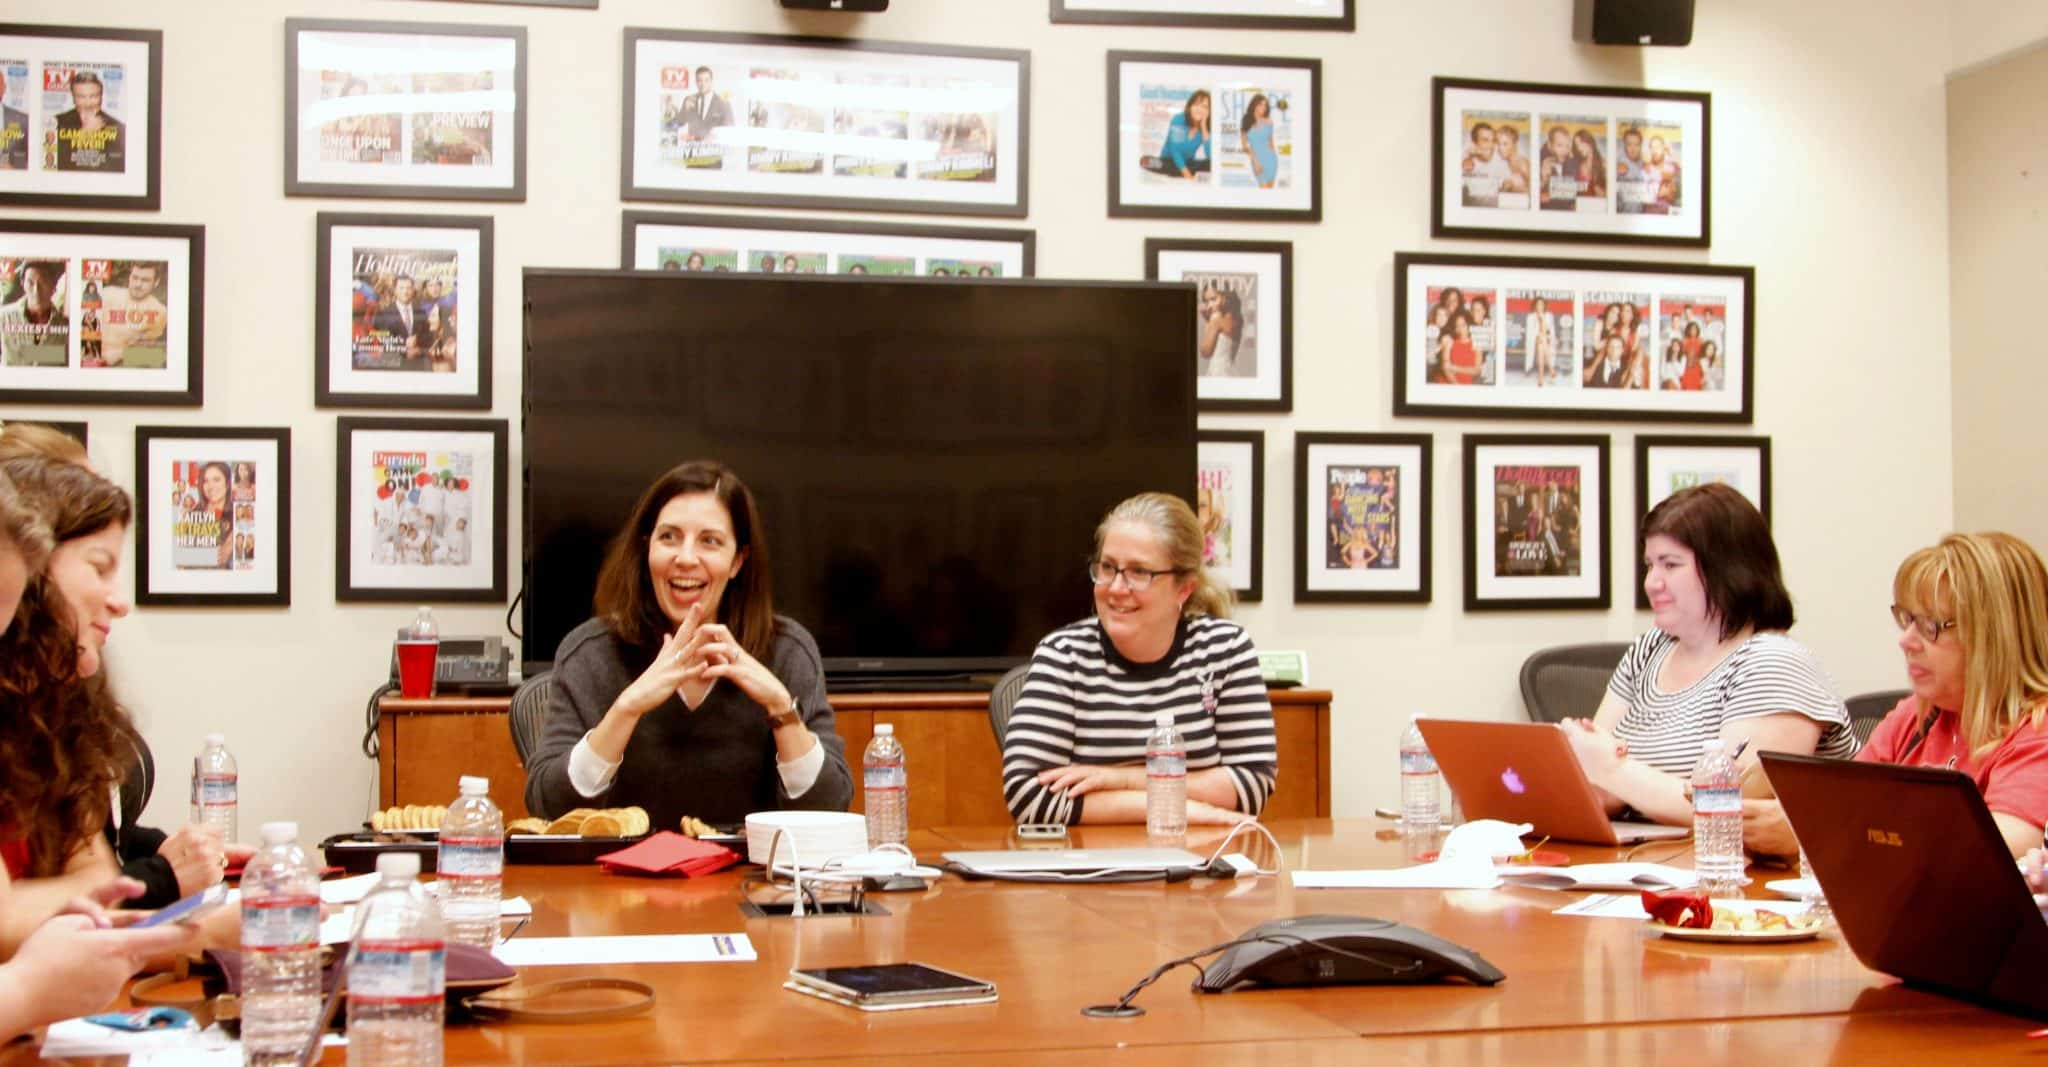 NEW Kevin (Probably) Saves the World Episode! #KevinProbably #ABCTVEvent #PixarCocoEvent